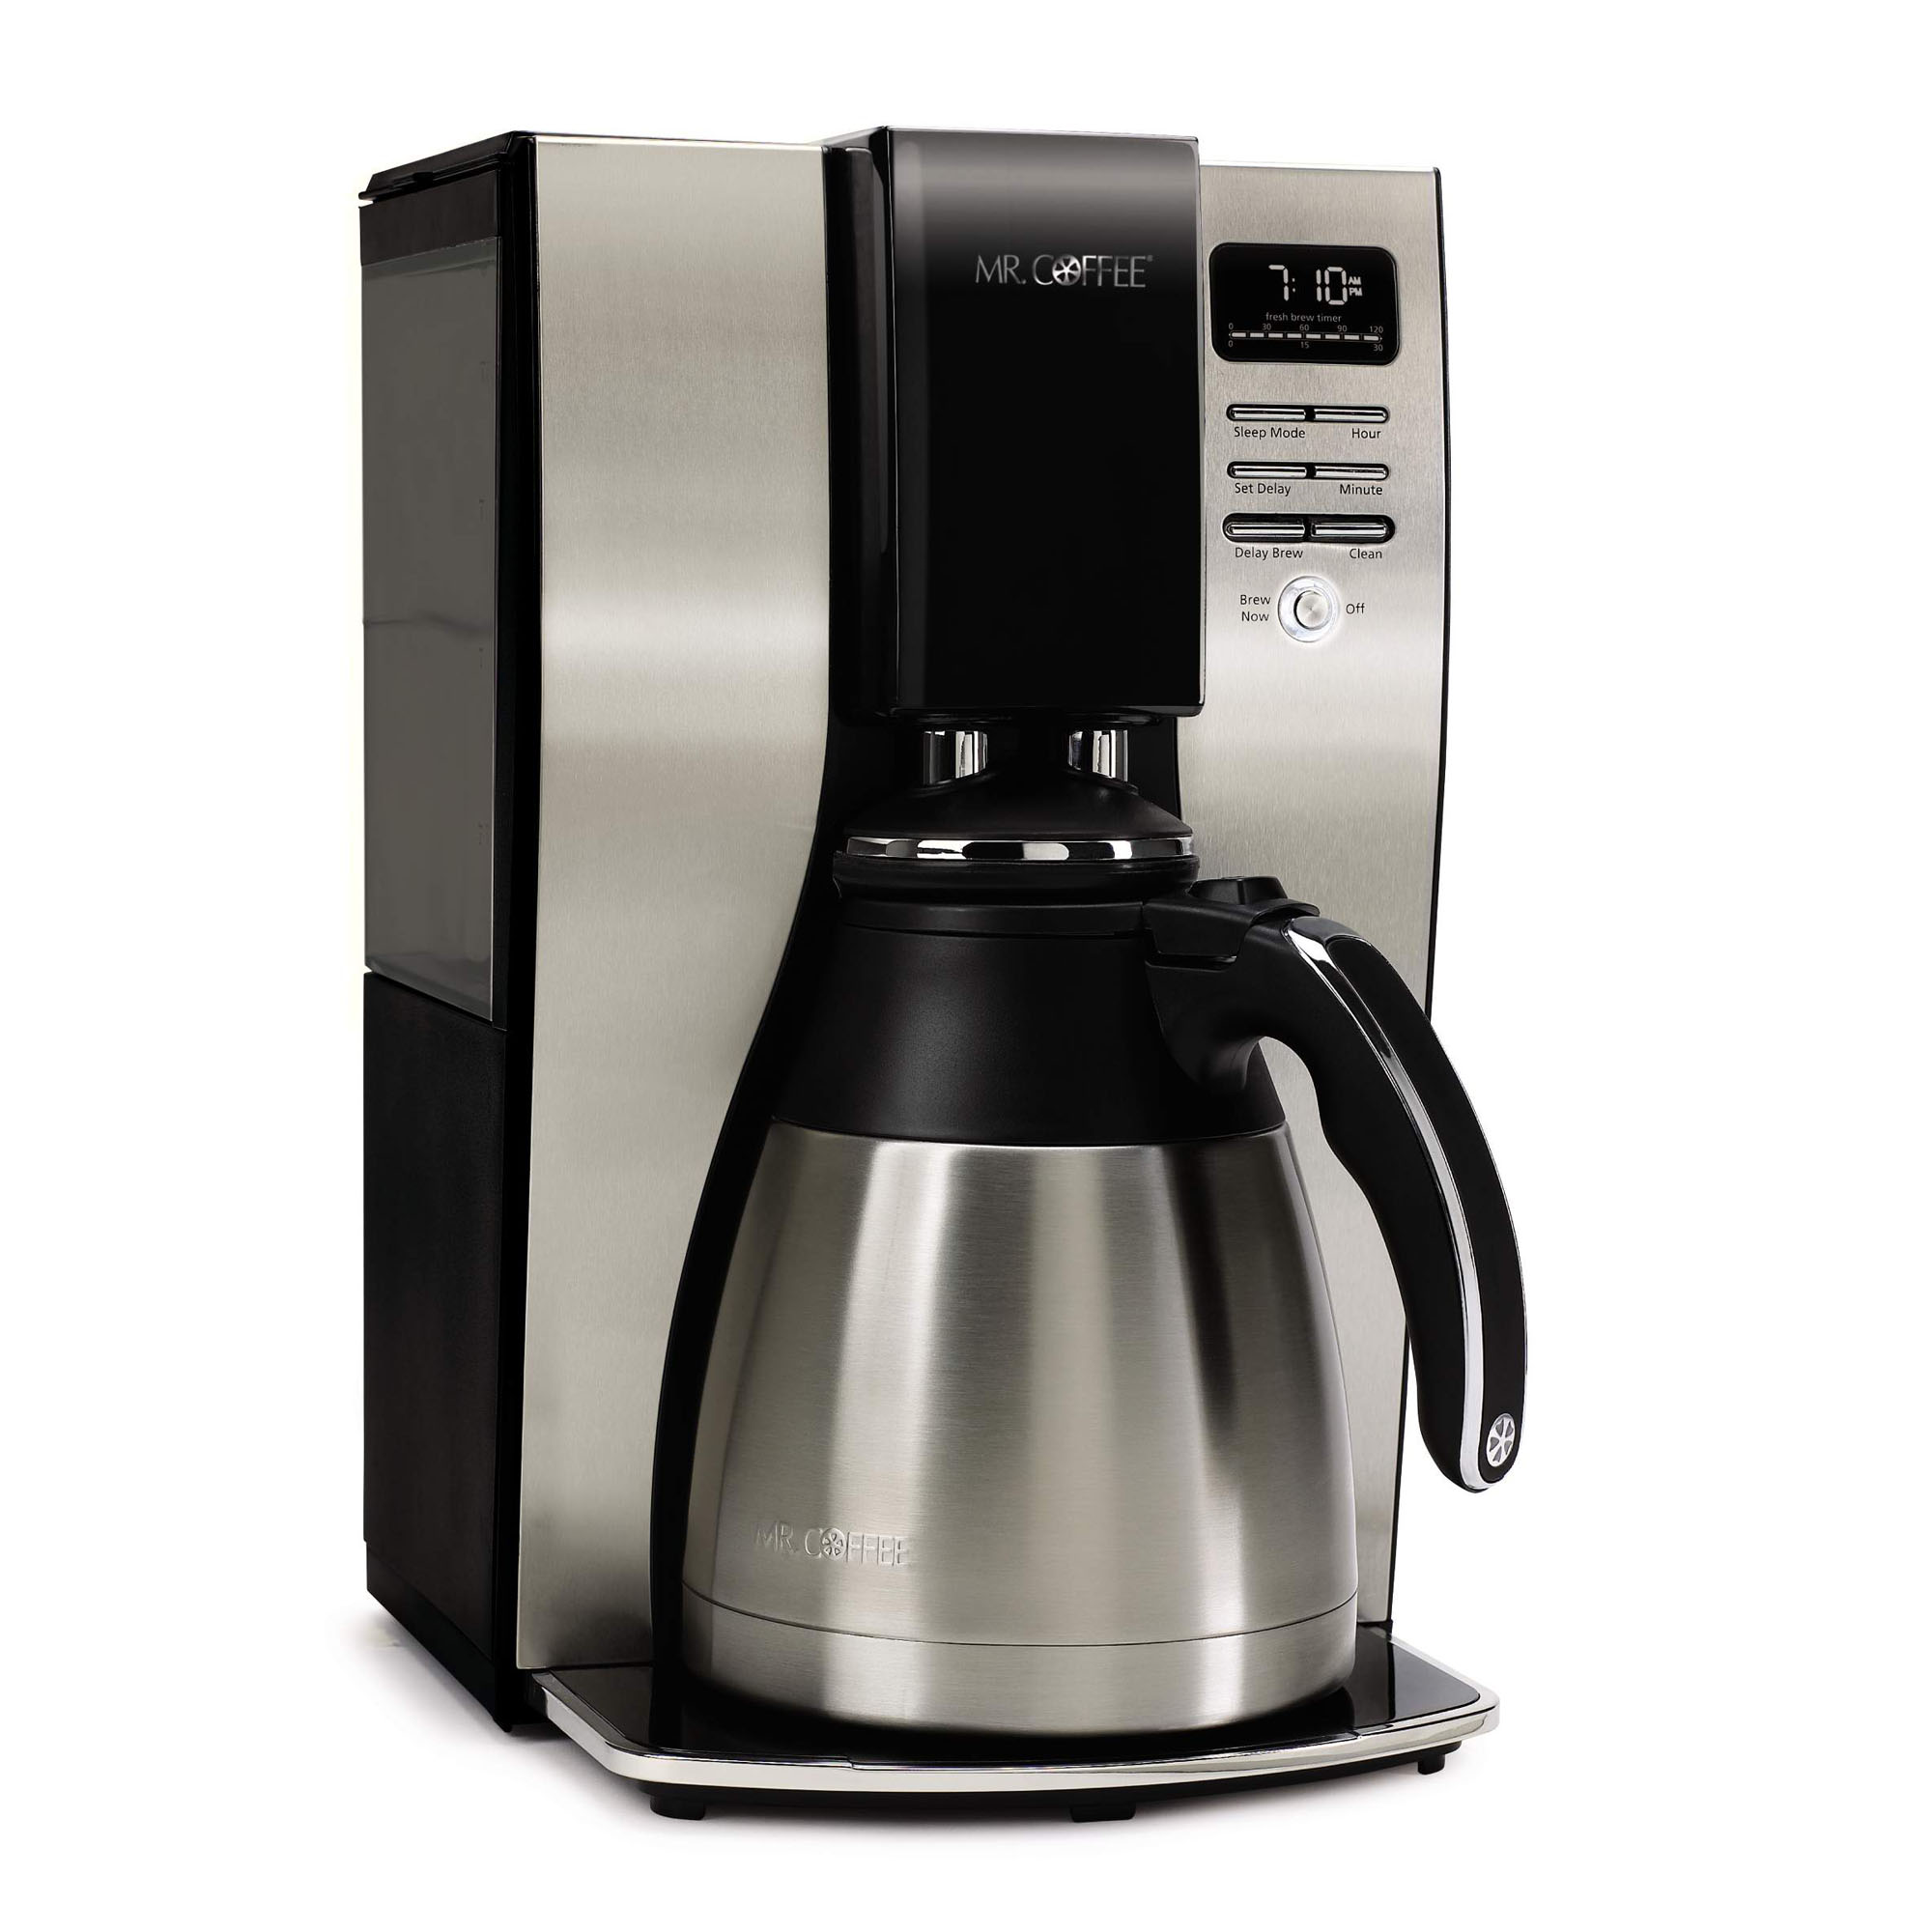 Delonghi 10 Cup Drip Coffee Maker Dual Heating System